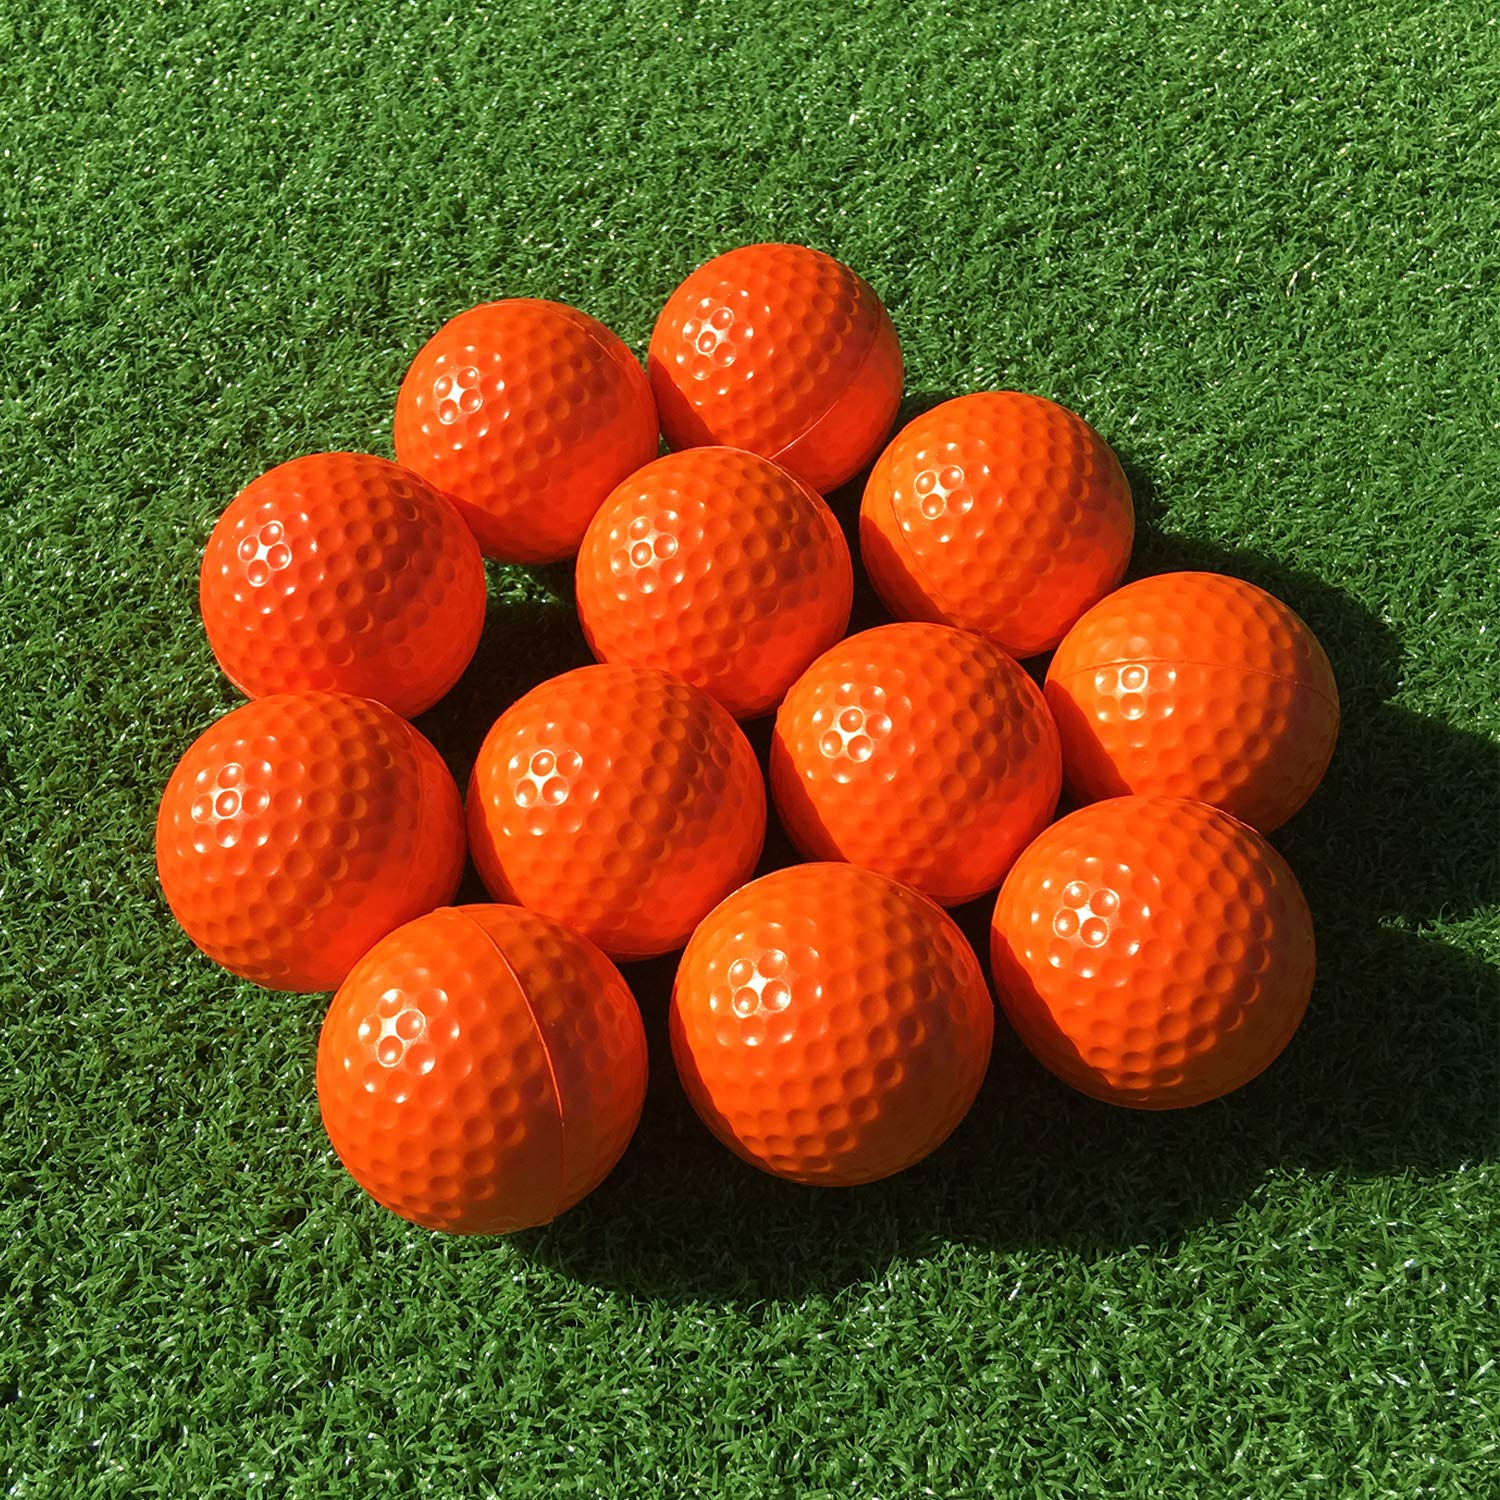 SkyLife Golf Practice Balls 12 Count, Soft Golf Foam Balls for Indoor Outdoor Backyard Training (Orange 12pcs) by SkyLife